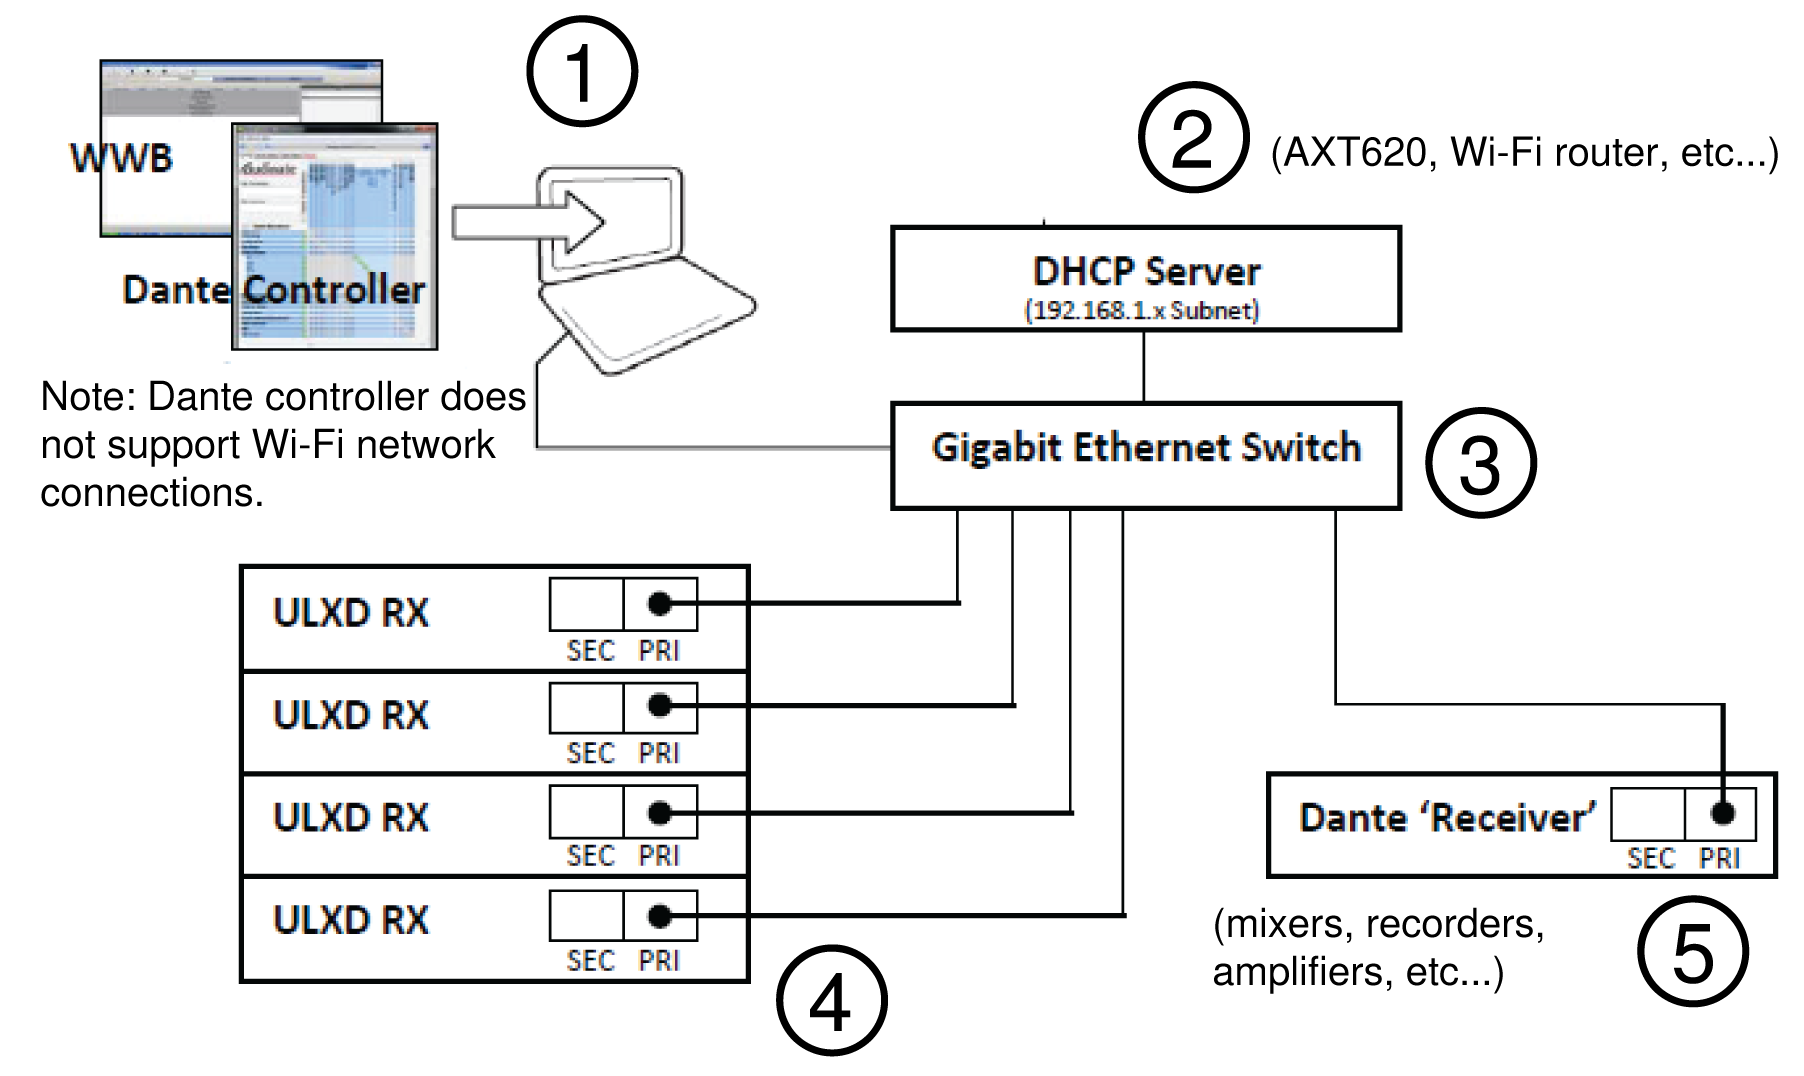 The steps to set up a Dante and Wireless Workbench network illustrated